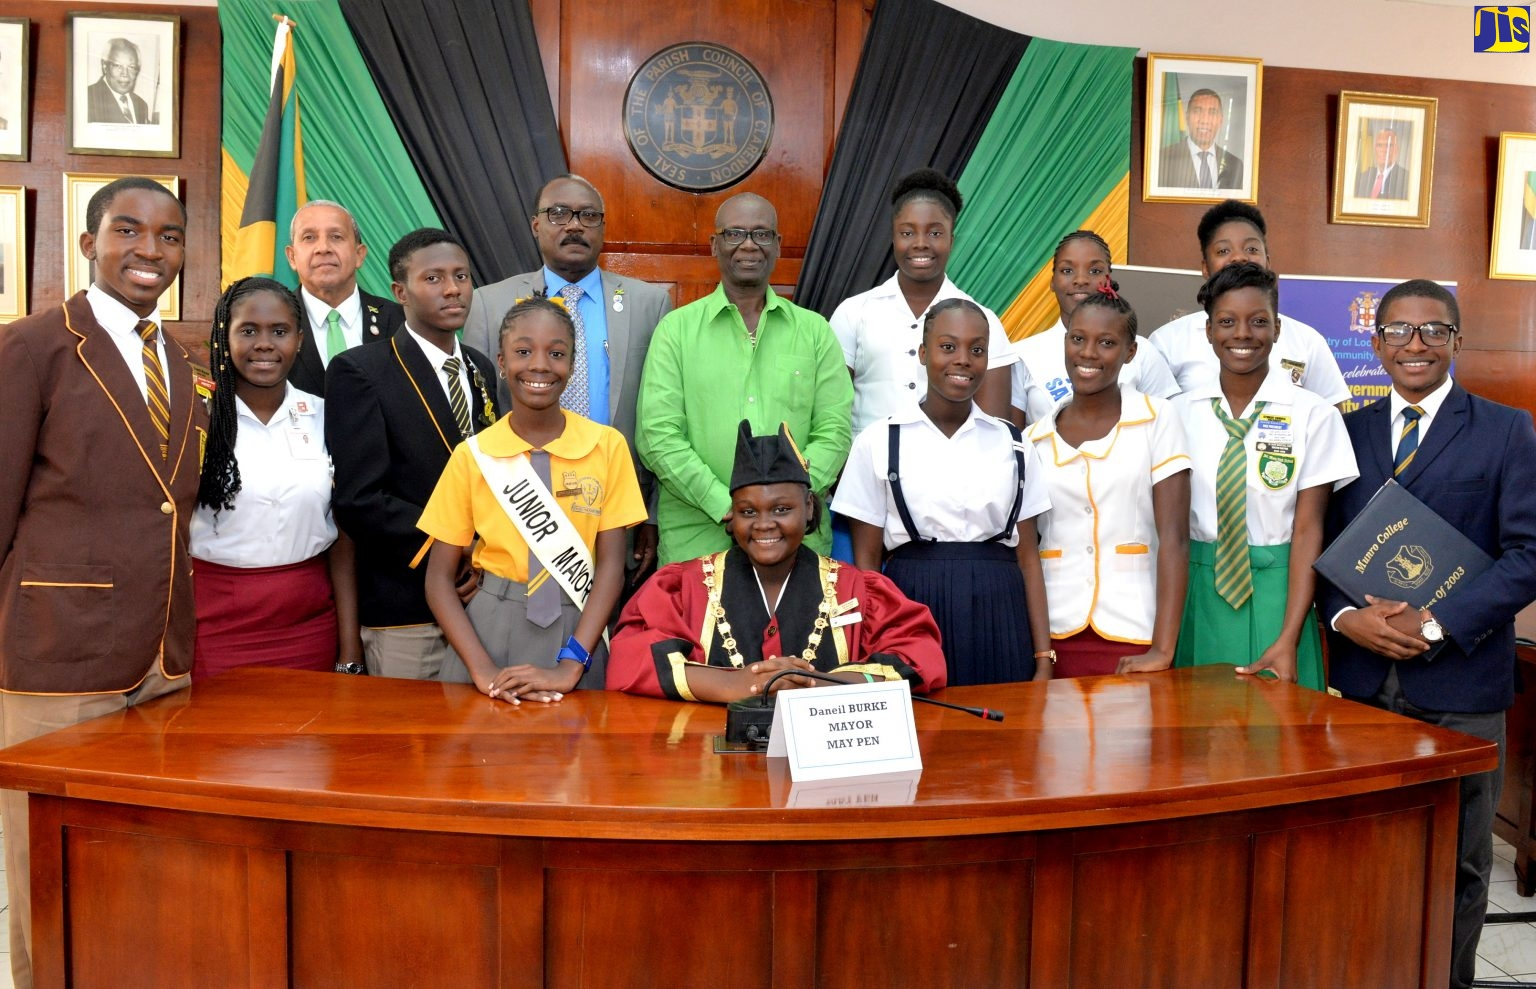 Local government minister targets inaugural youth mayors' forum as incubator of new talent for the local government system